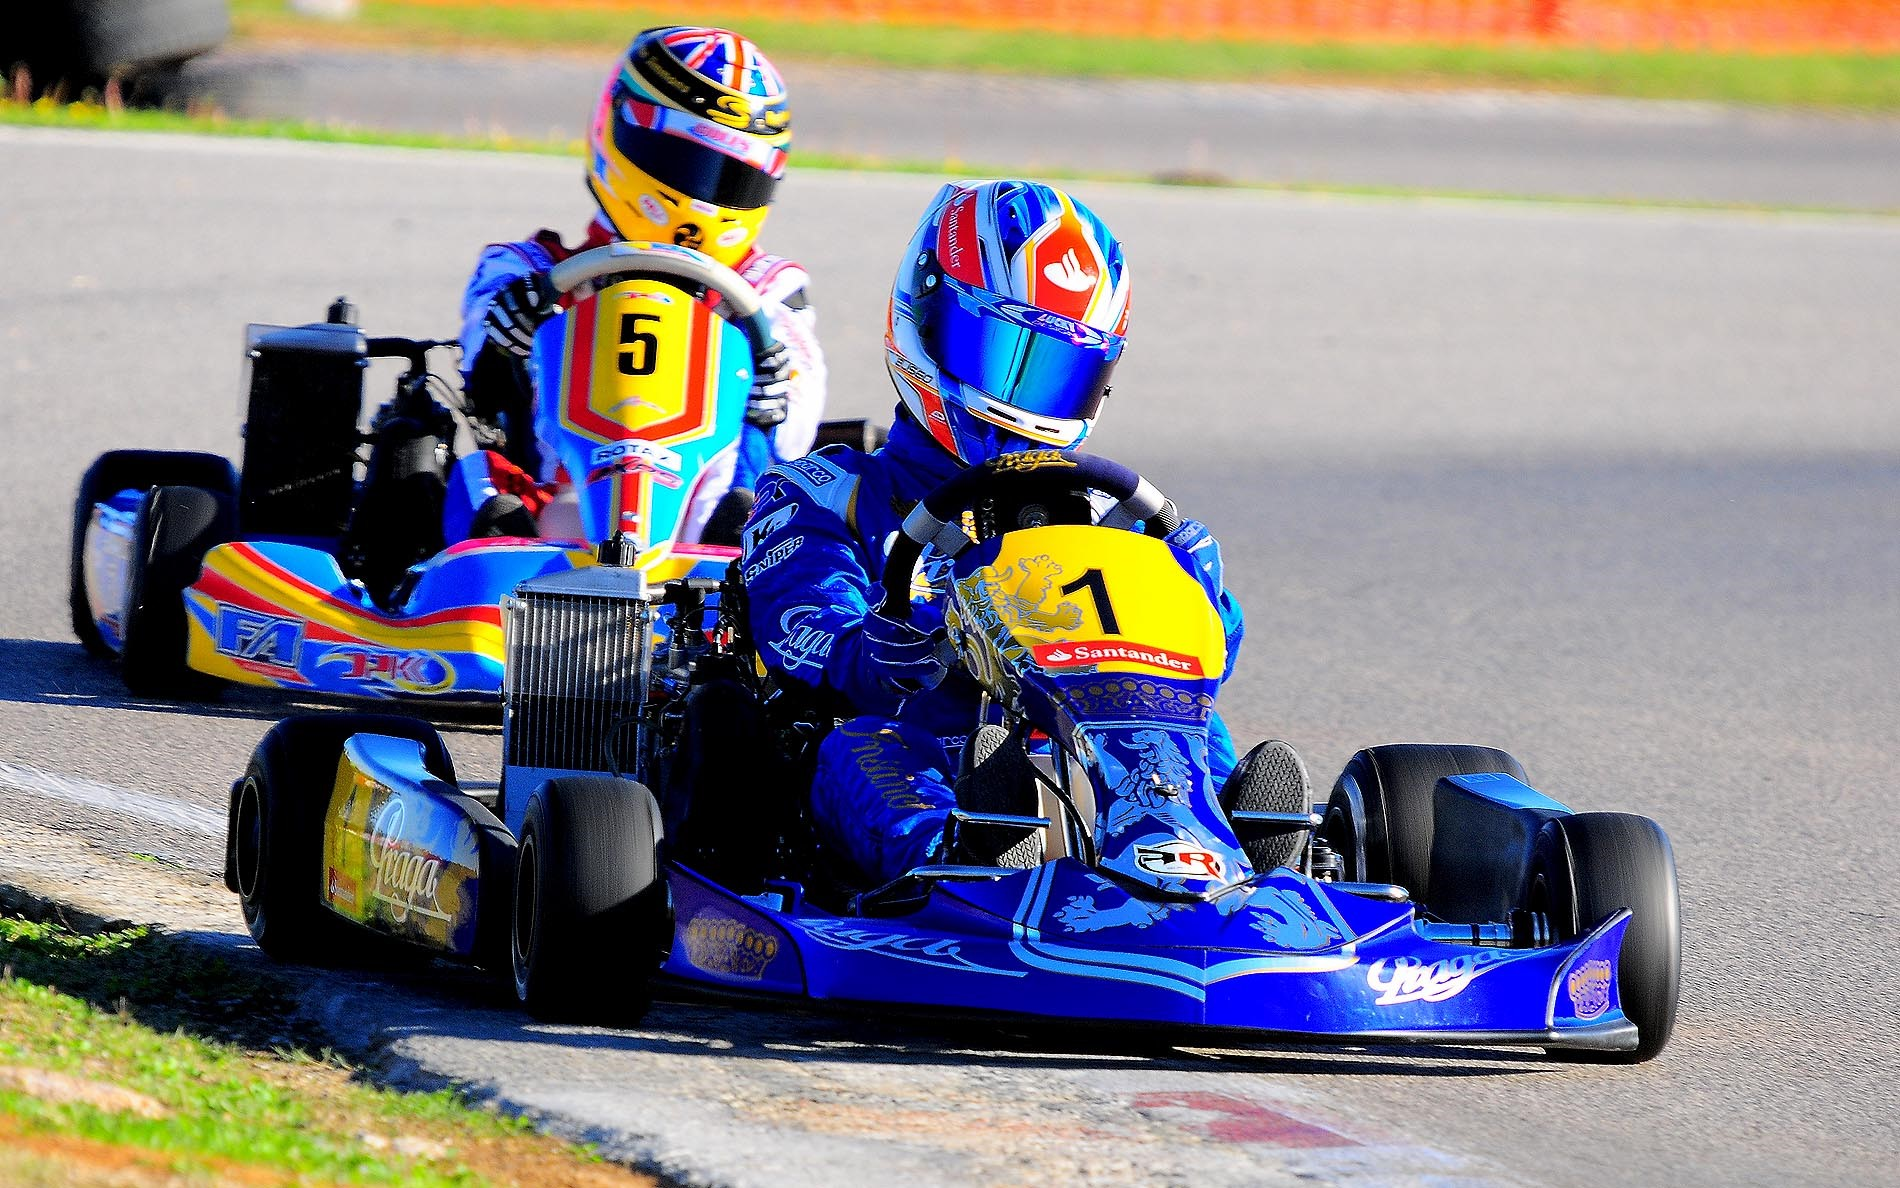 Eliseo Martinez factory pilot of Praga Kart Racing